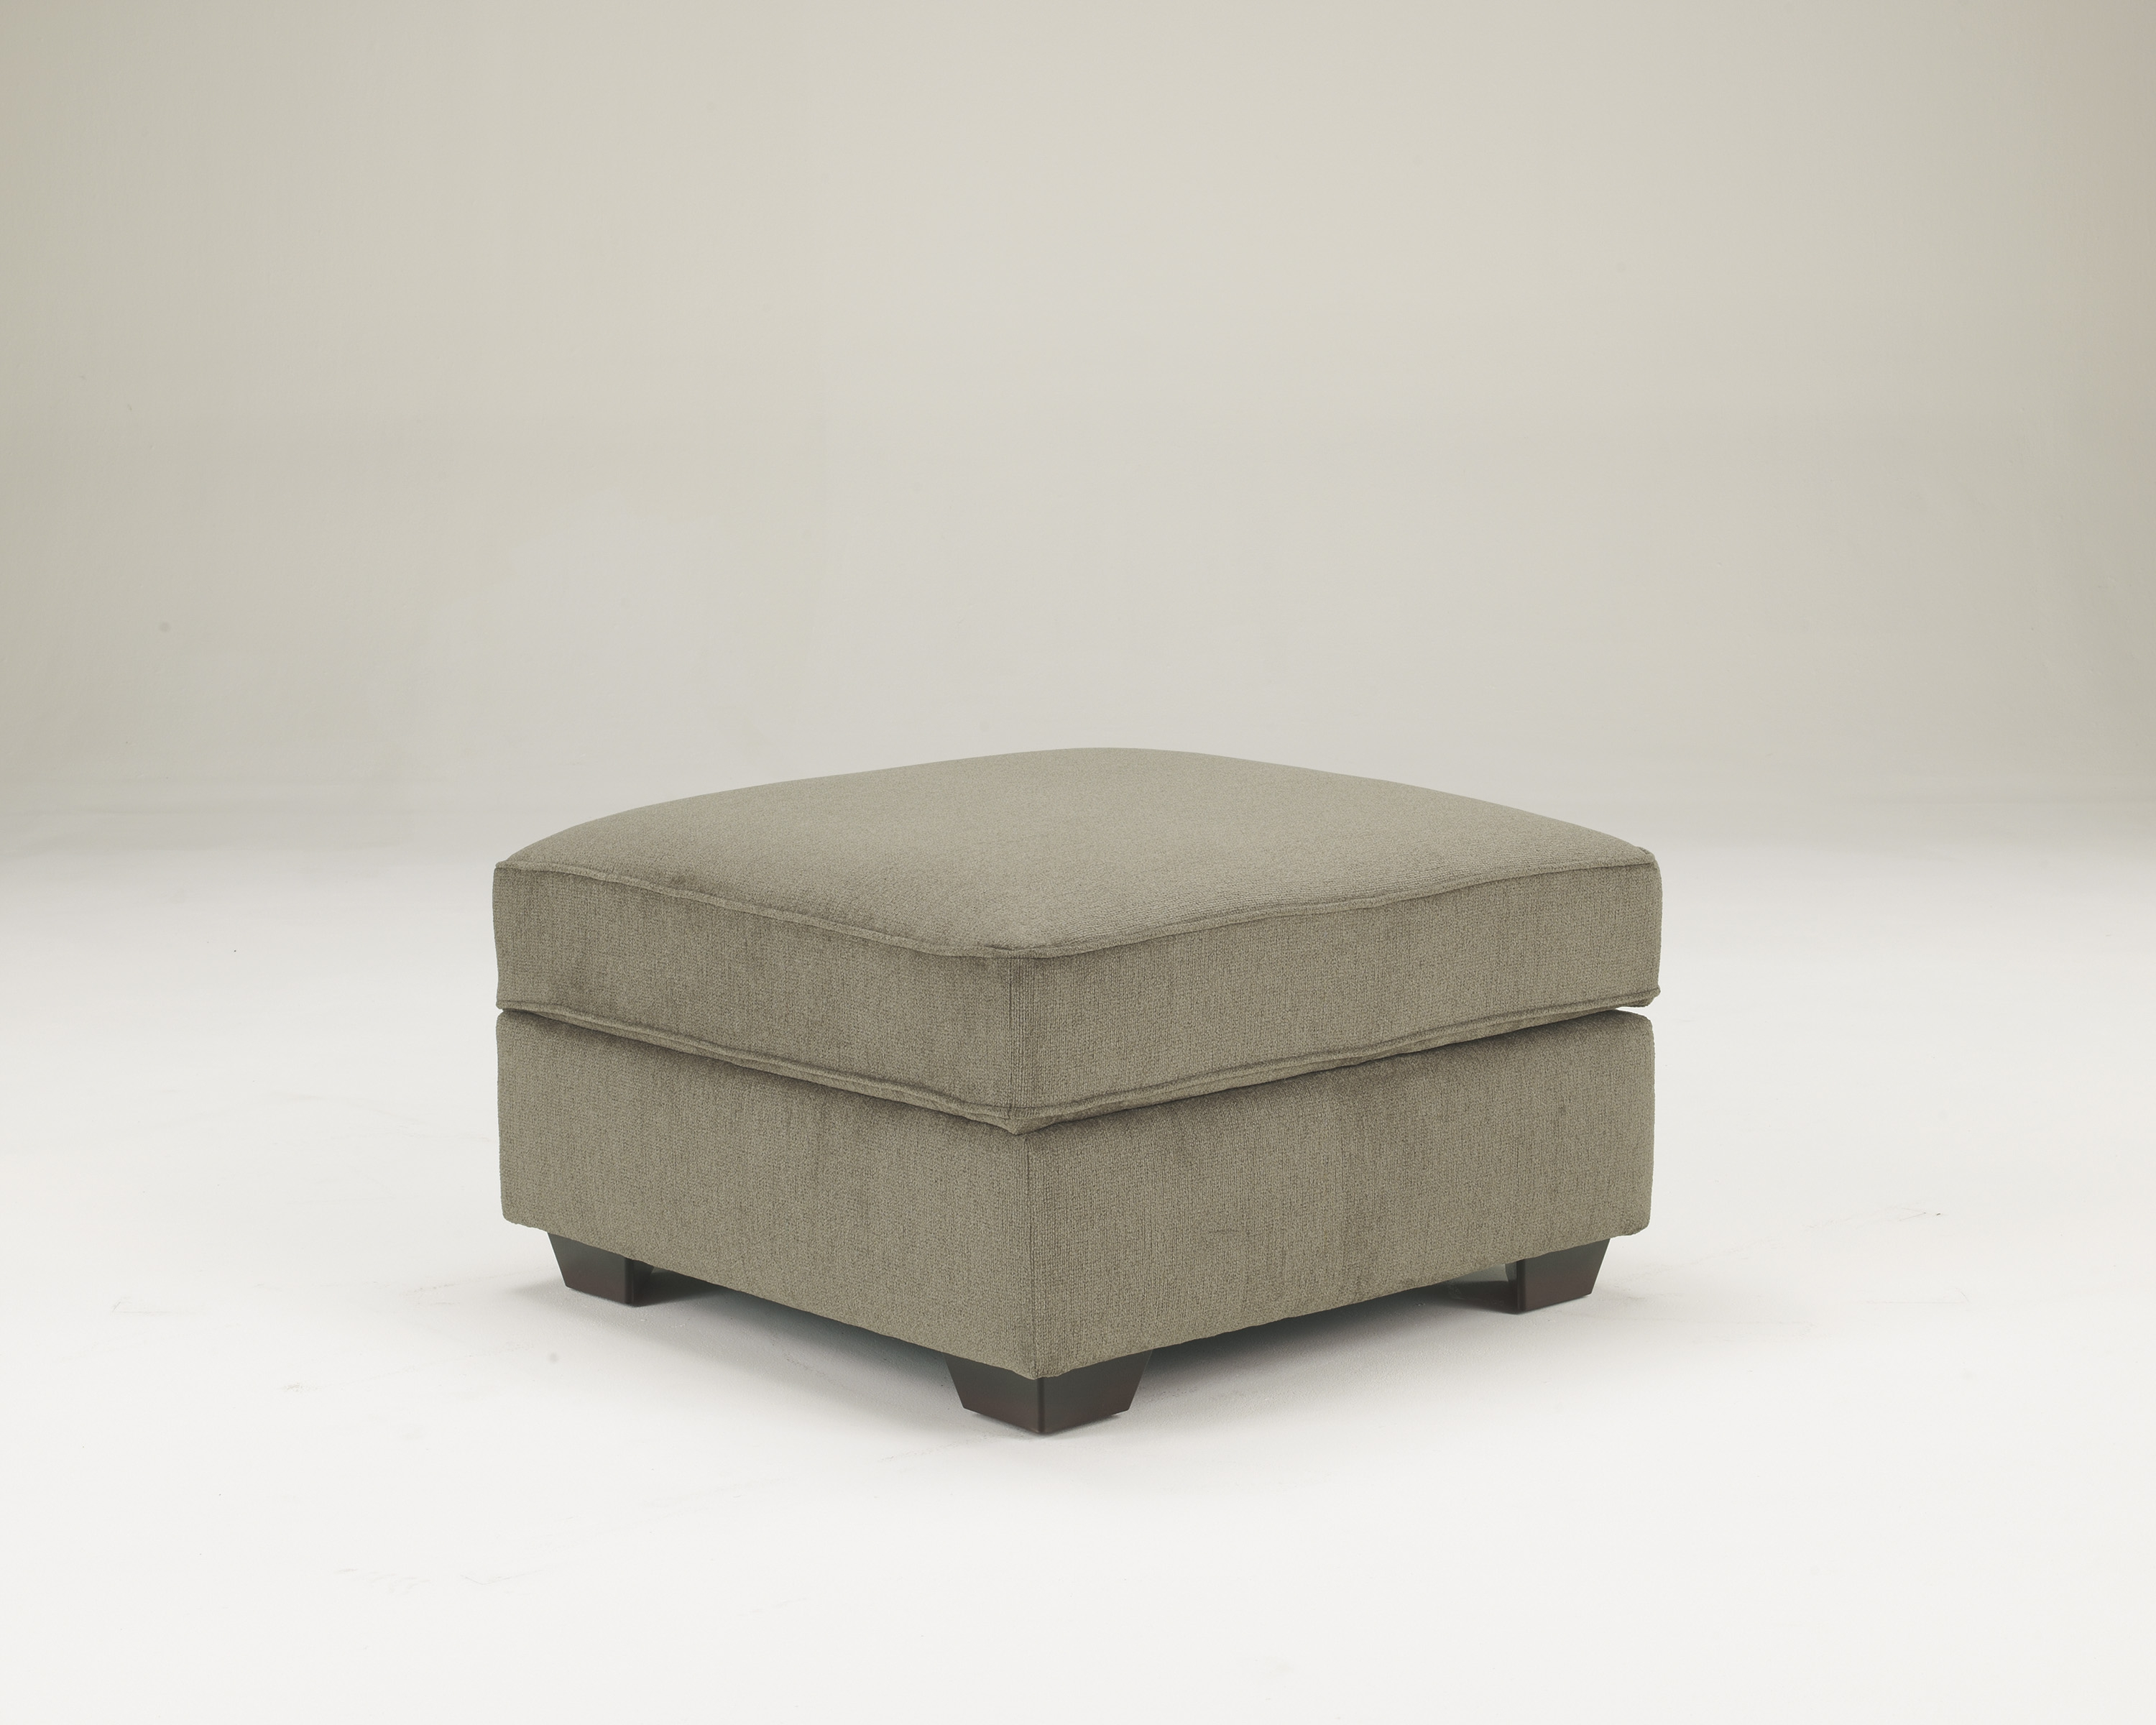 Ashley Furniture Patola Park Patina Storage Ottoman The Classy Home